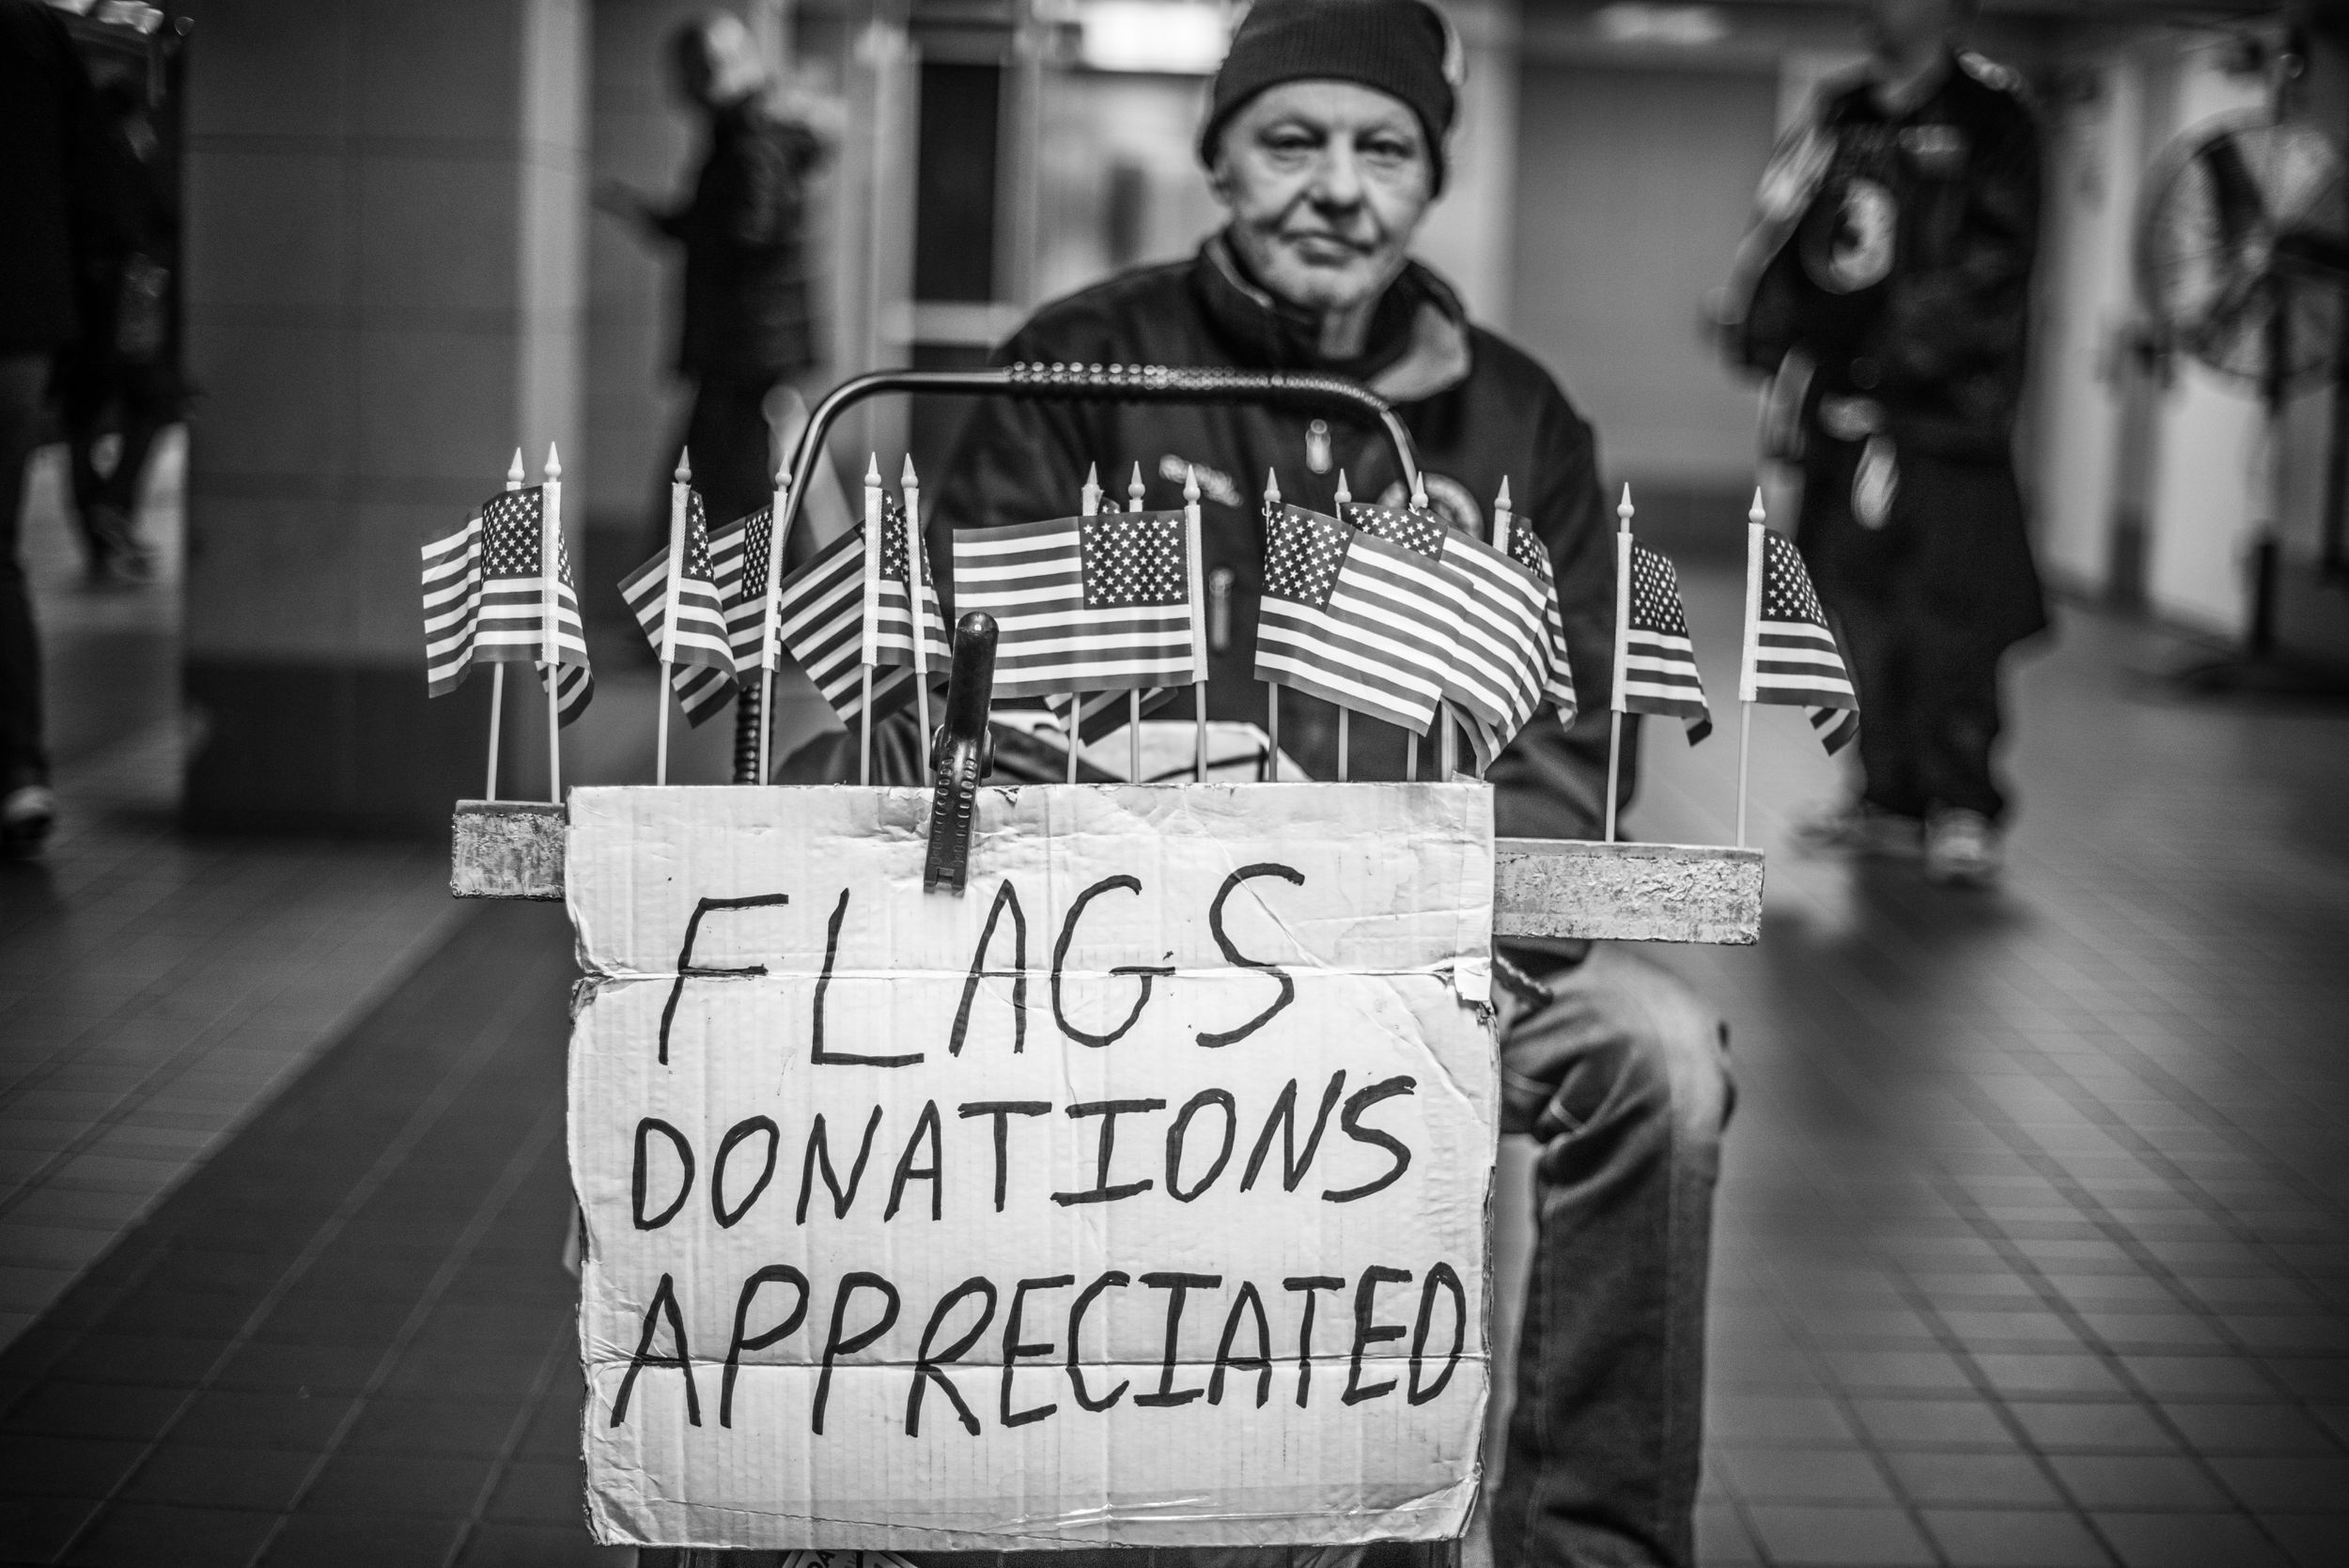 Street vendor selling USA flags